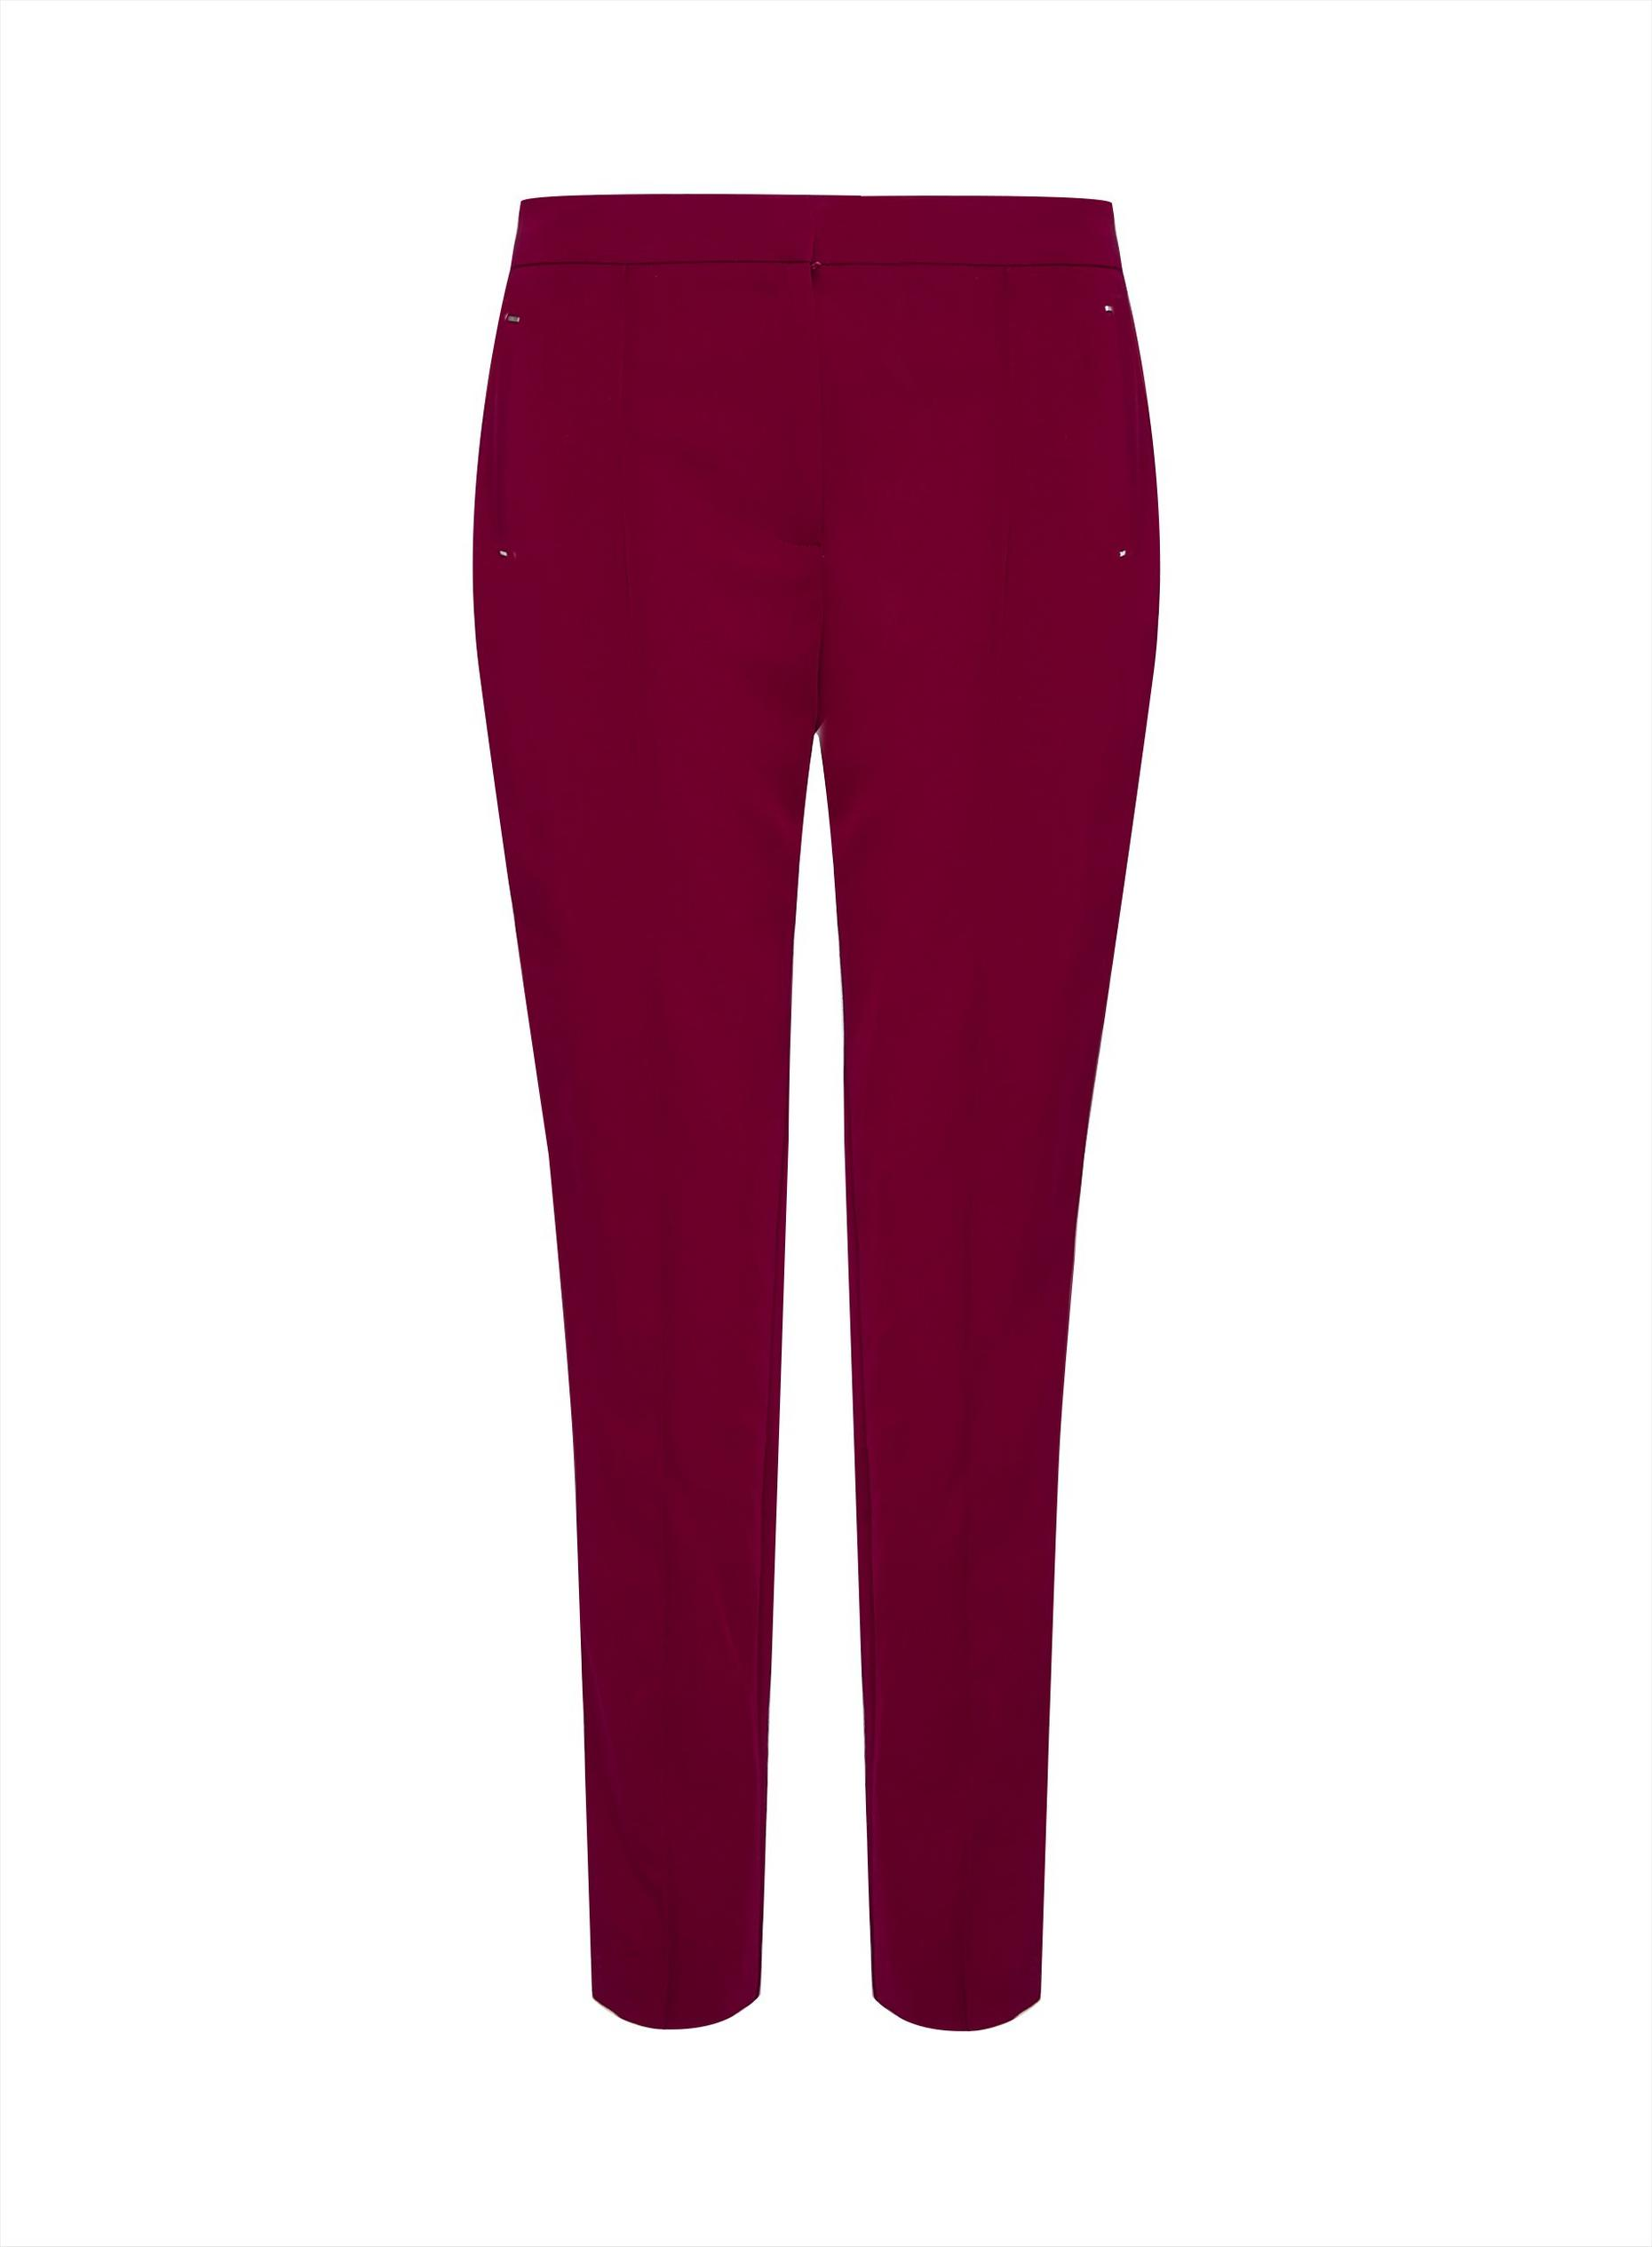 Tall Red Tailored Trousers